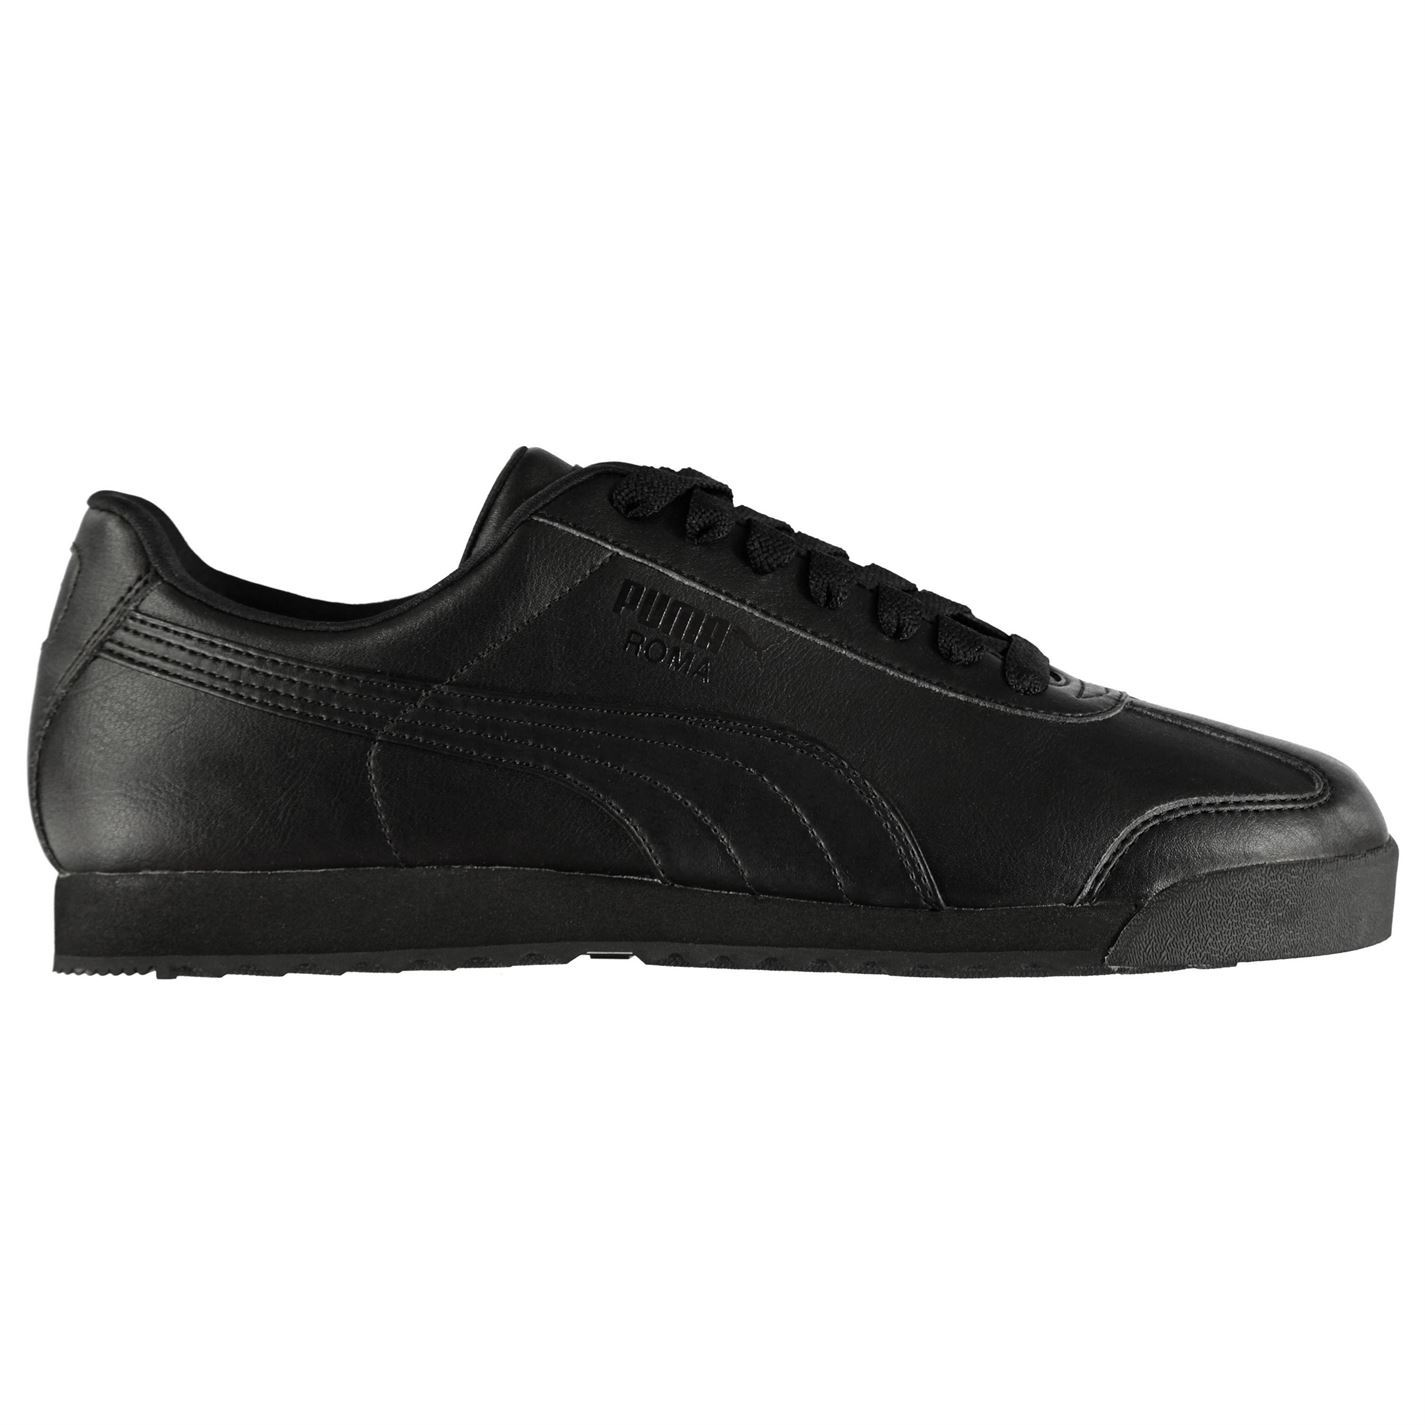 Puma-Roma-Basic-Trainers-Mens-Athleisure-Footwear-Shoes-Sneakers thumbnail 7